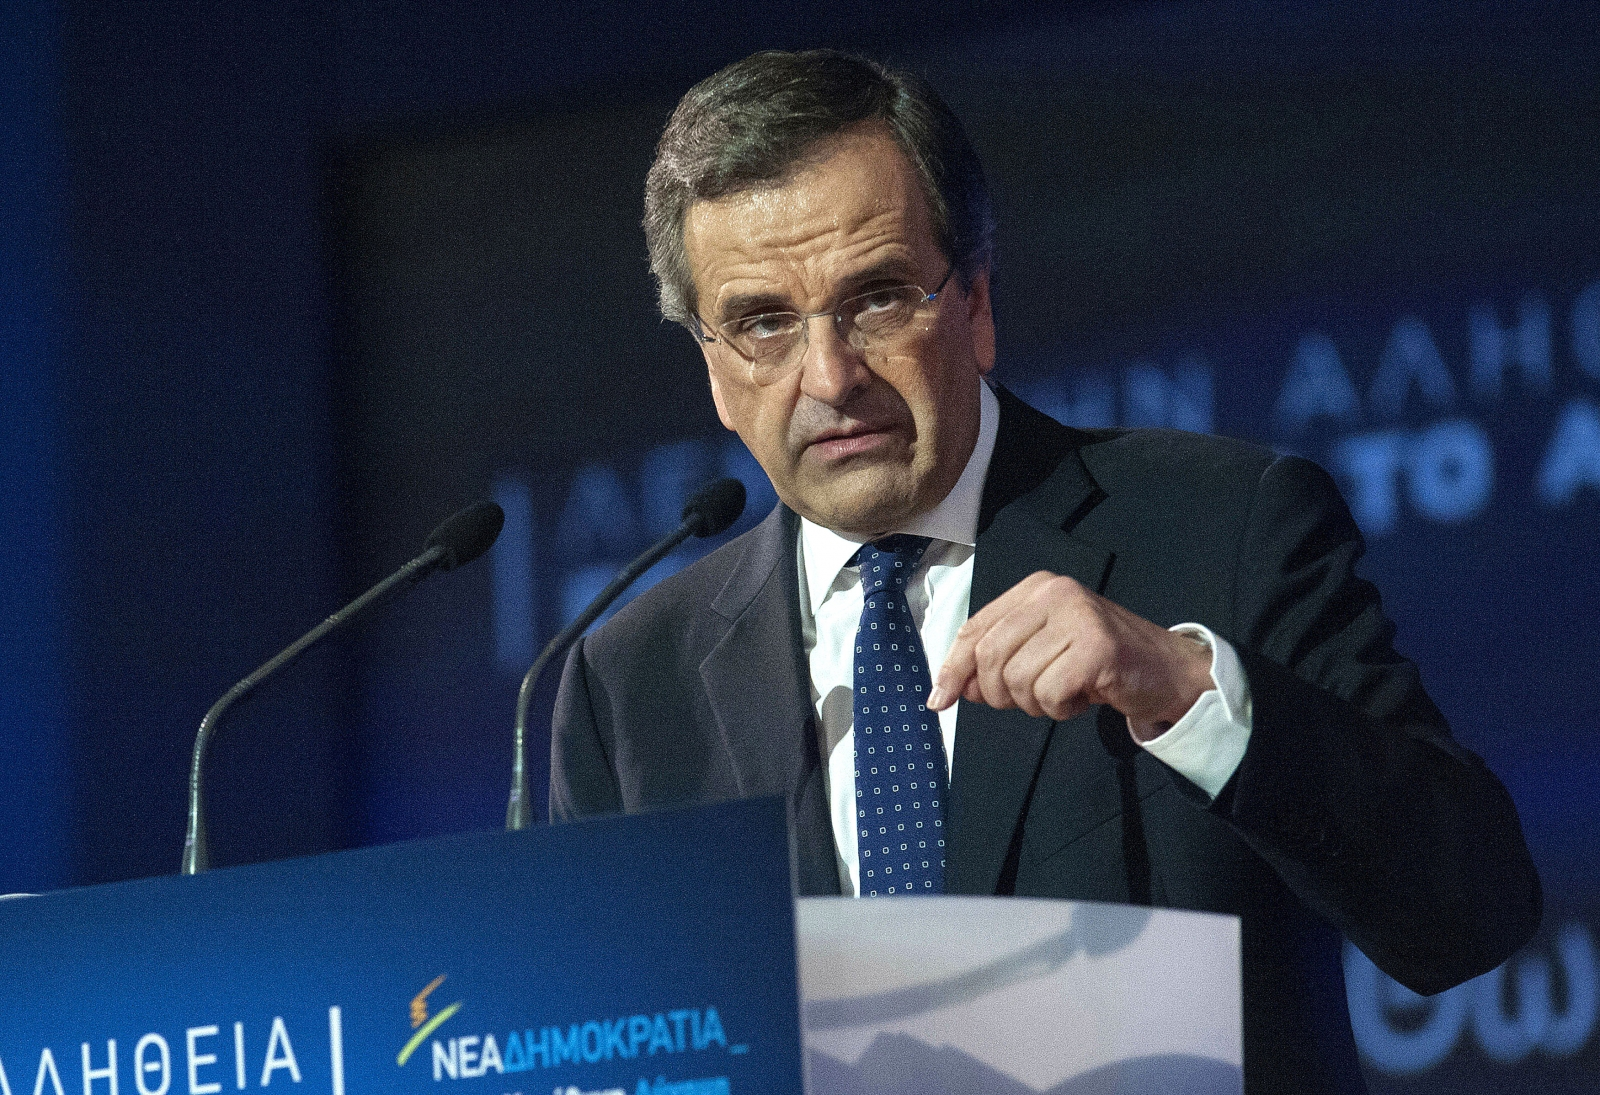 Greek Prime Minister and leader of the conservative New Democracy party Antonis Samaras addresses supporters during an election rally